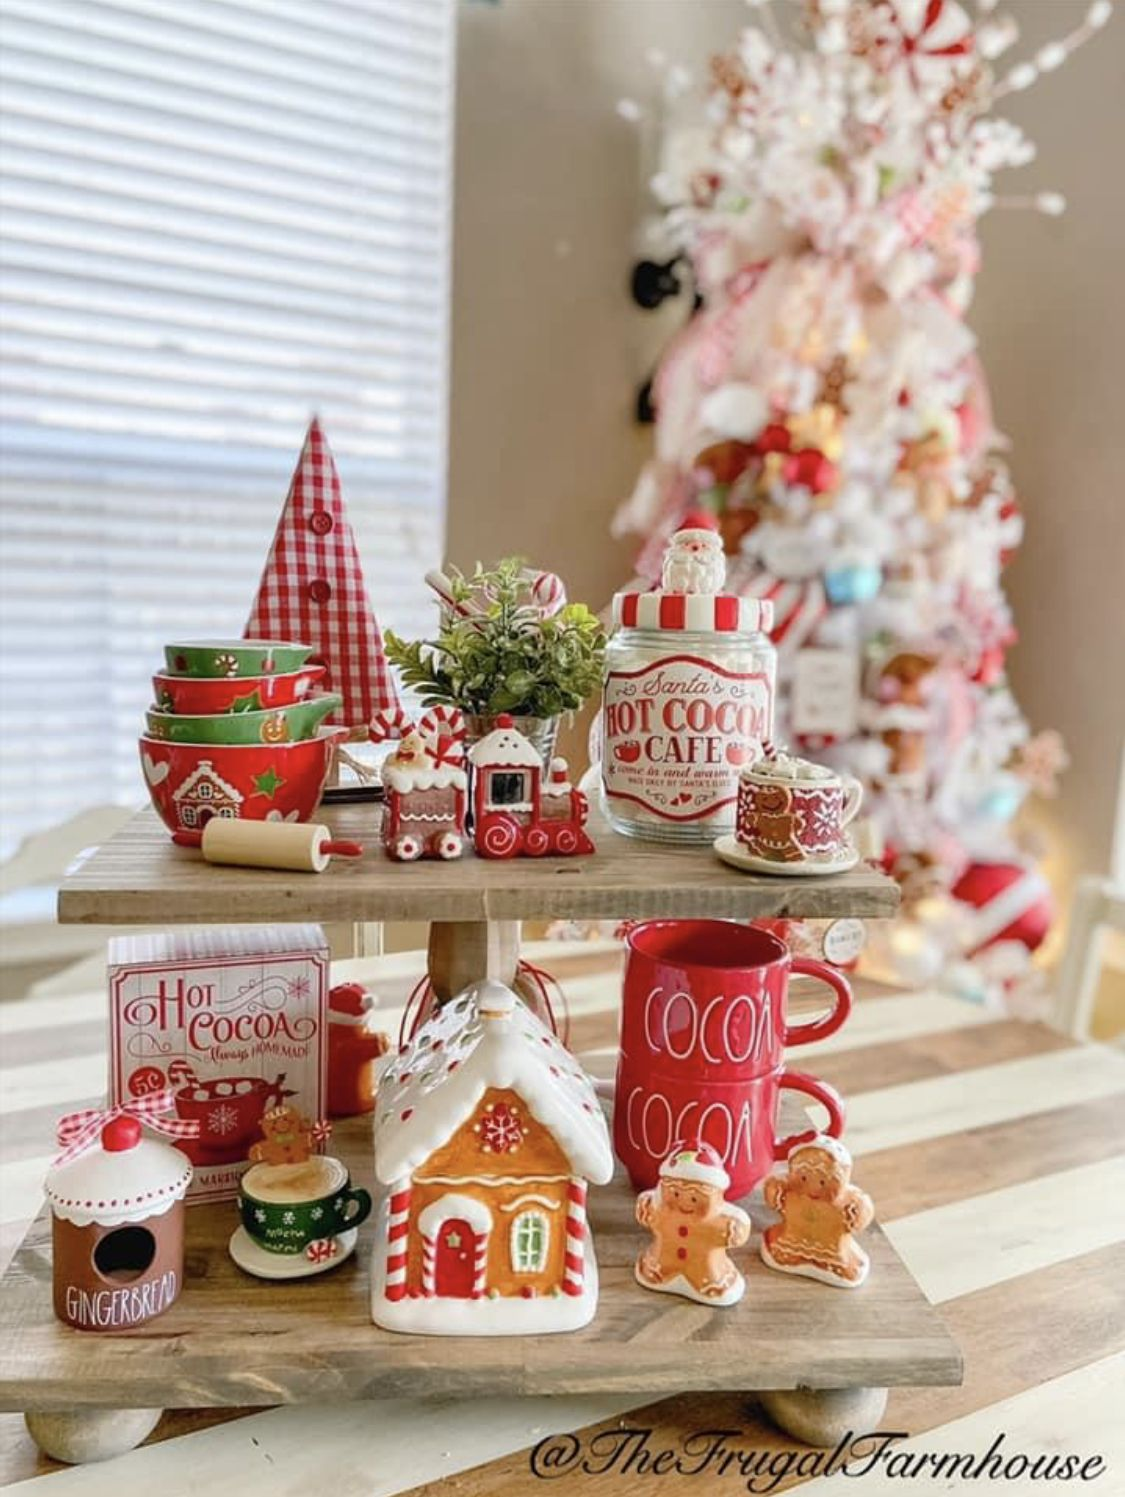 Pin By Dominique Cartee On Rae Dunn Displays Candy Christmas Decorations Gingerbread Christmas Decor Christmas Kitchen Decor